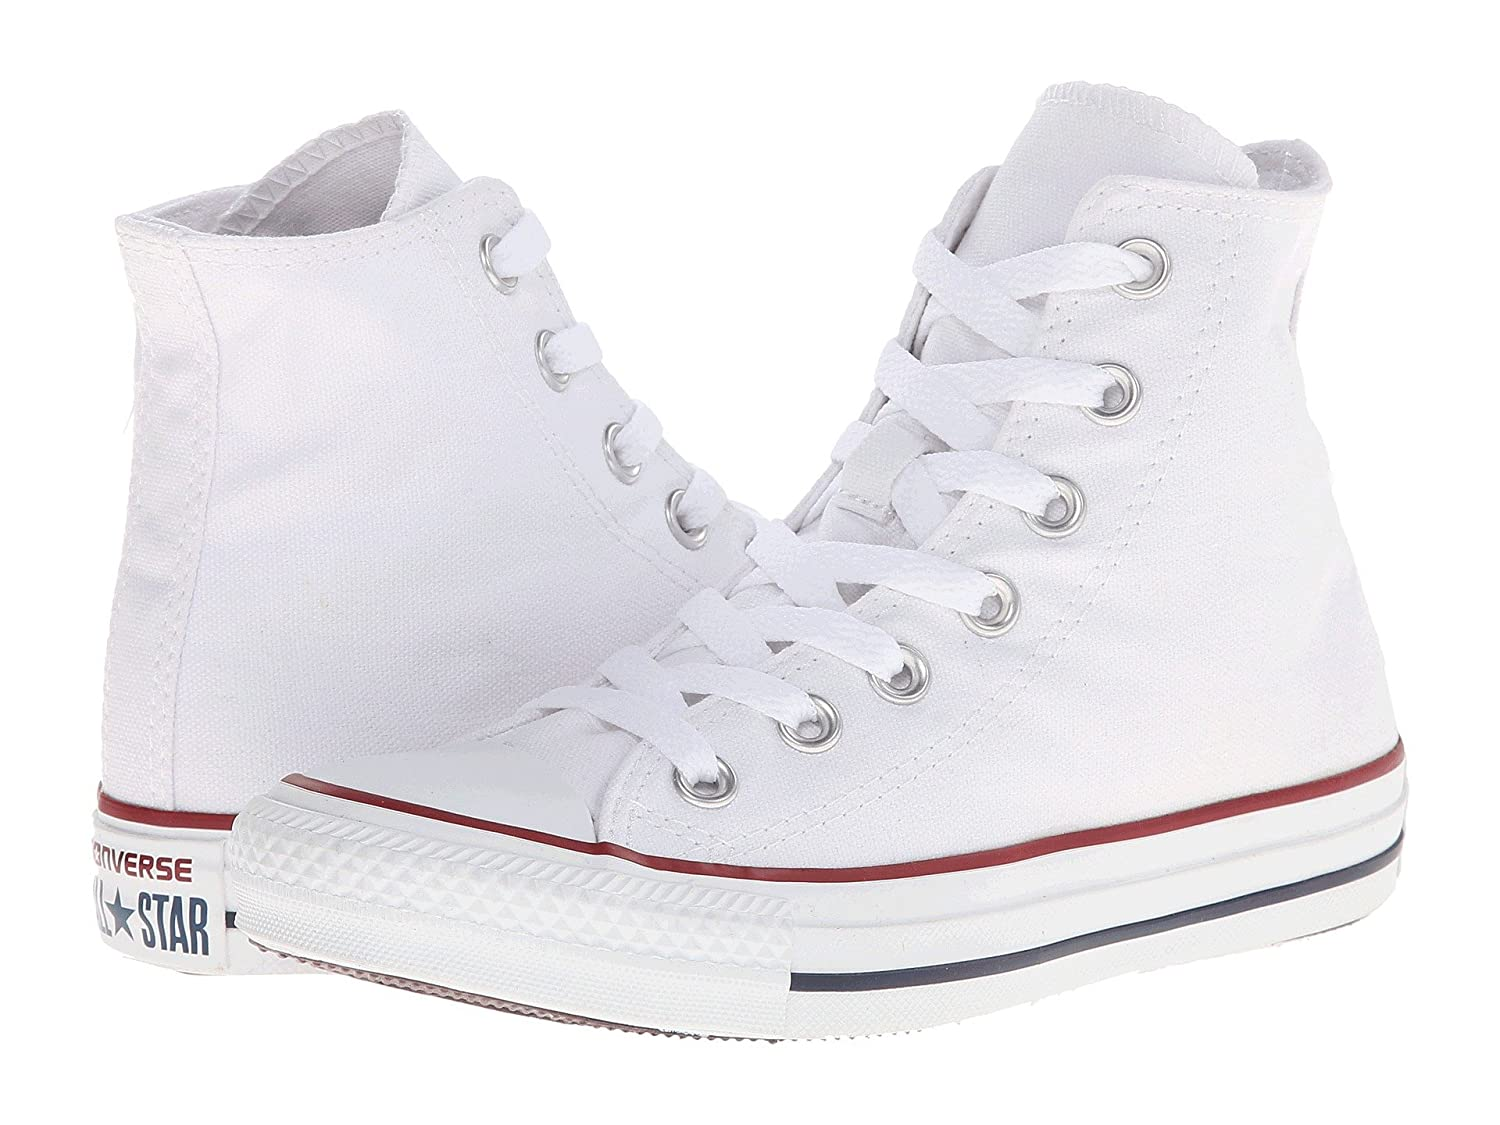 Converse Unisex Hi Chuck Taylor All Star Hi Unisex Top Sneaker B077PHP5VT 14 B(M) US Women / 12 D(M) US Men|Optical/White 956a48